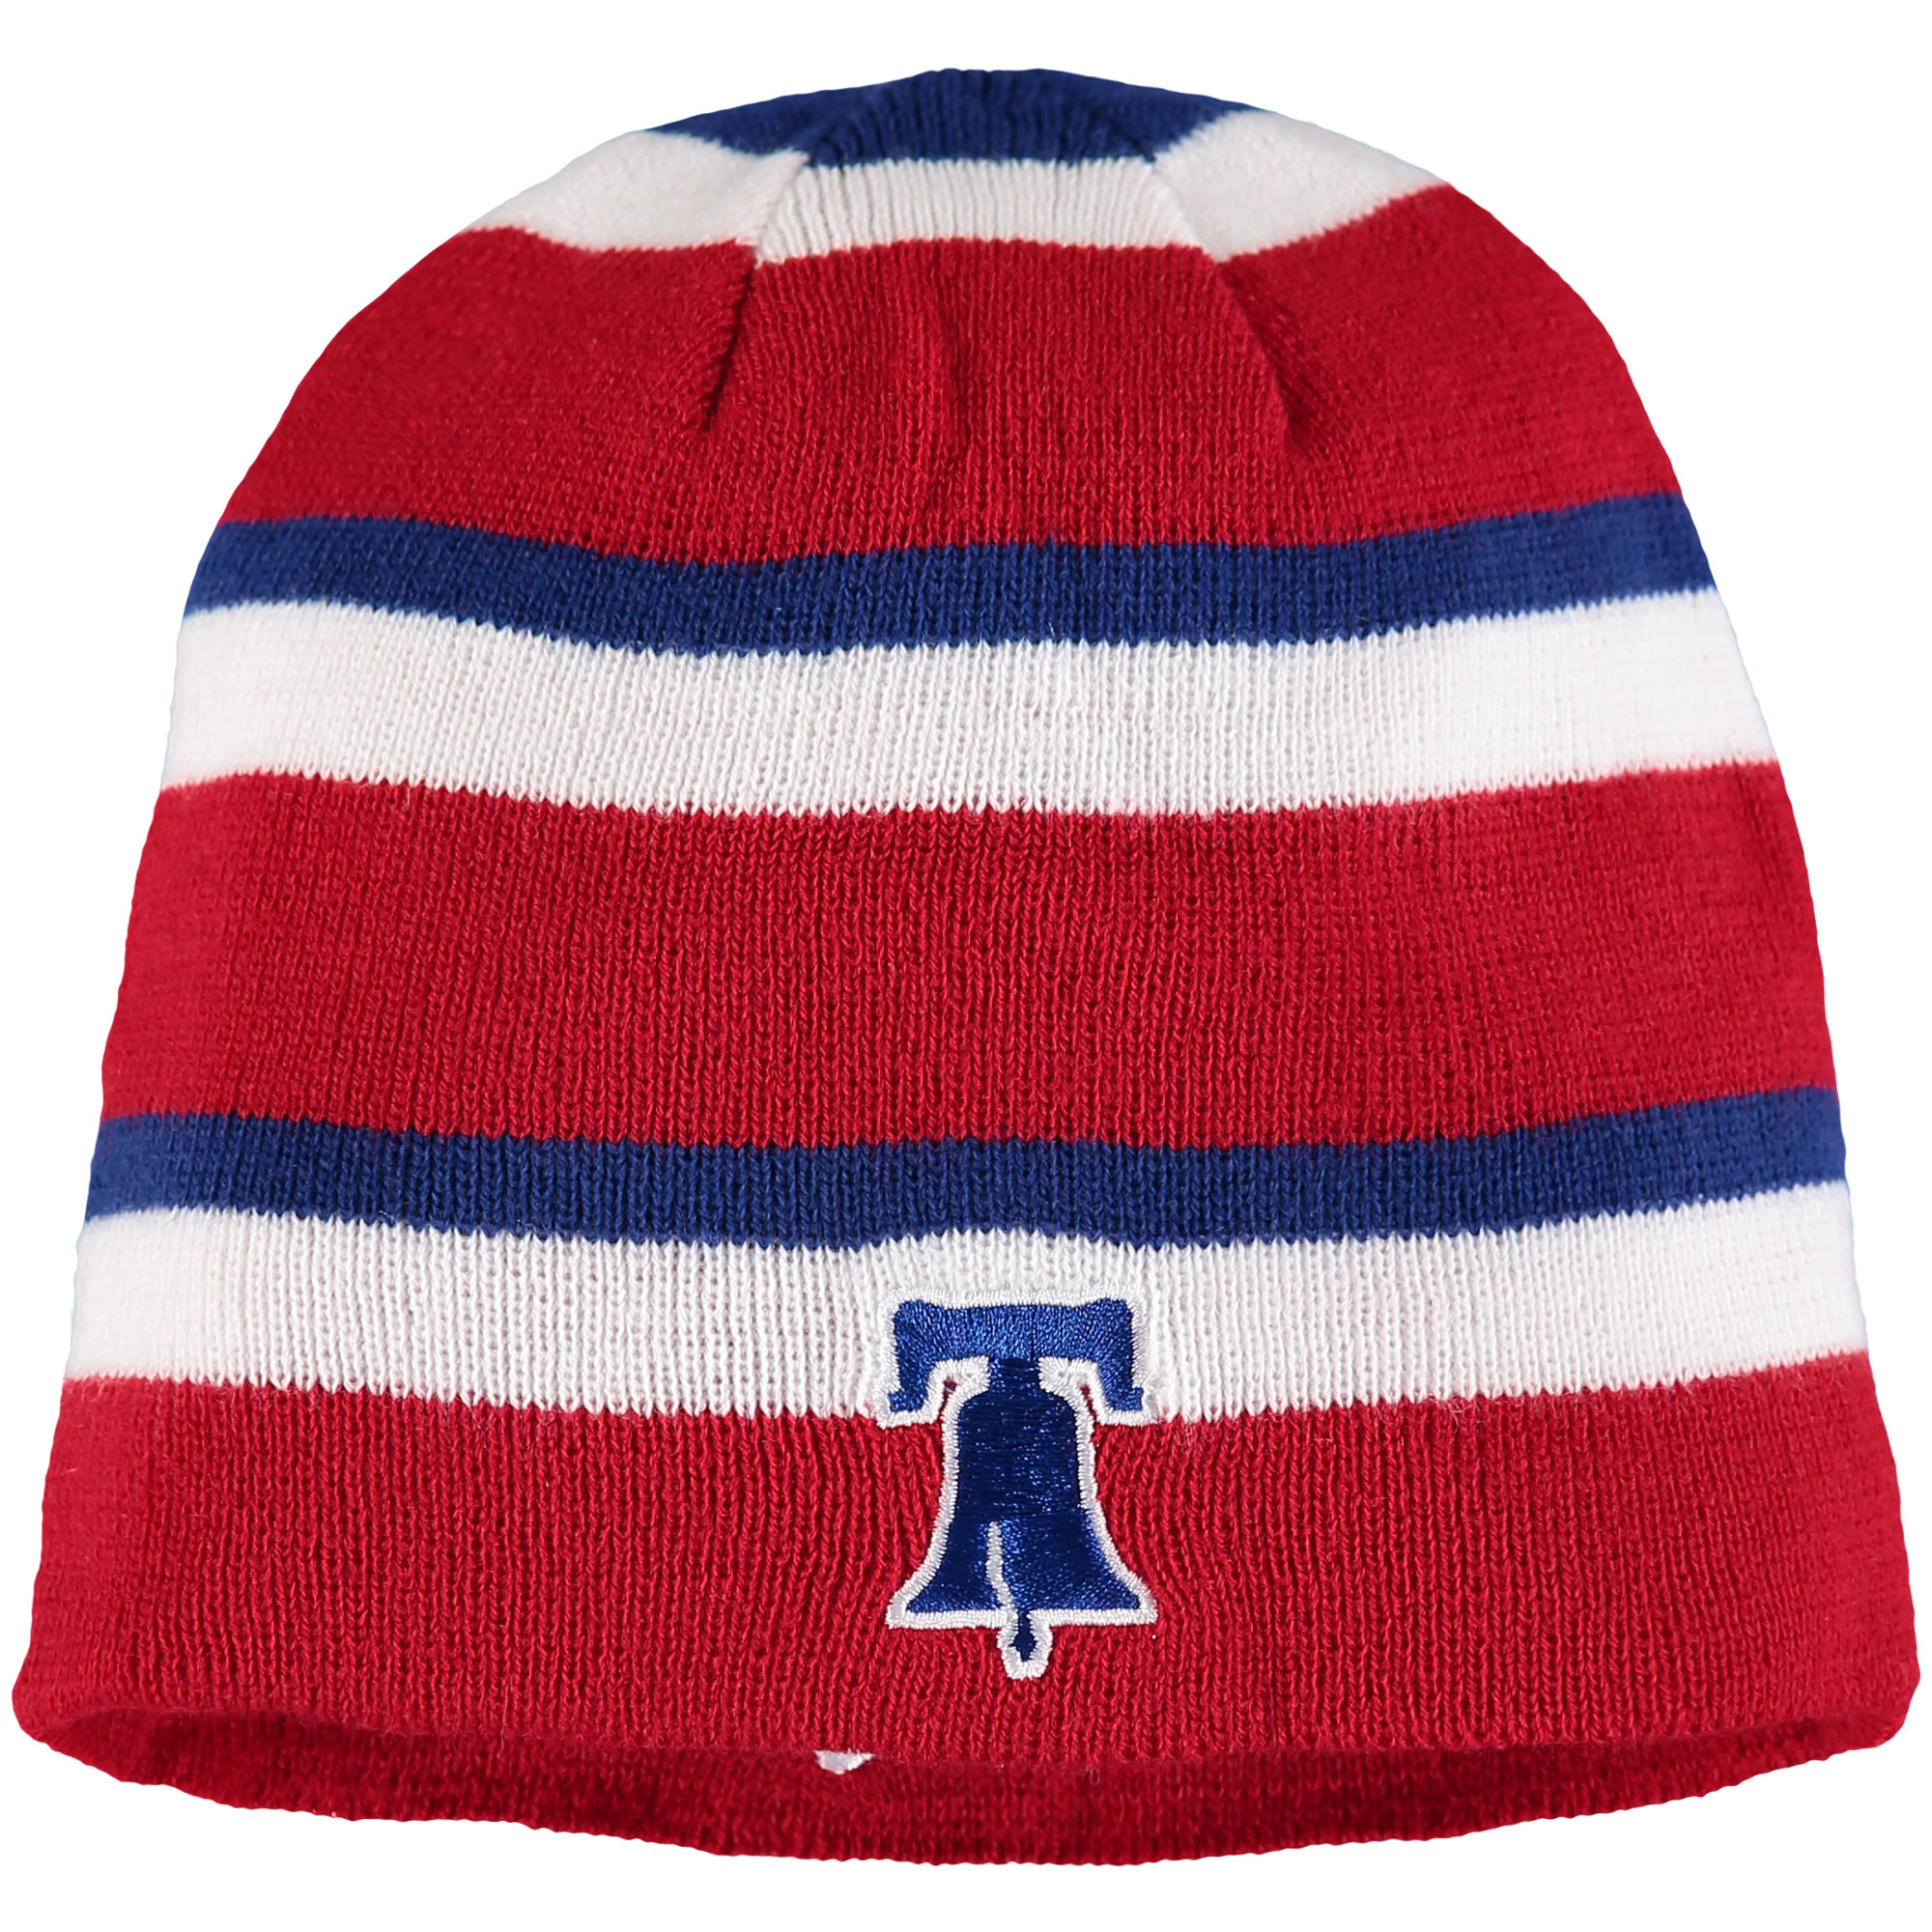 Philadelphia Phillies '47 Iconic Reversible Cuffless Knit Beanie - Red - OSFA